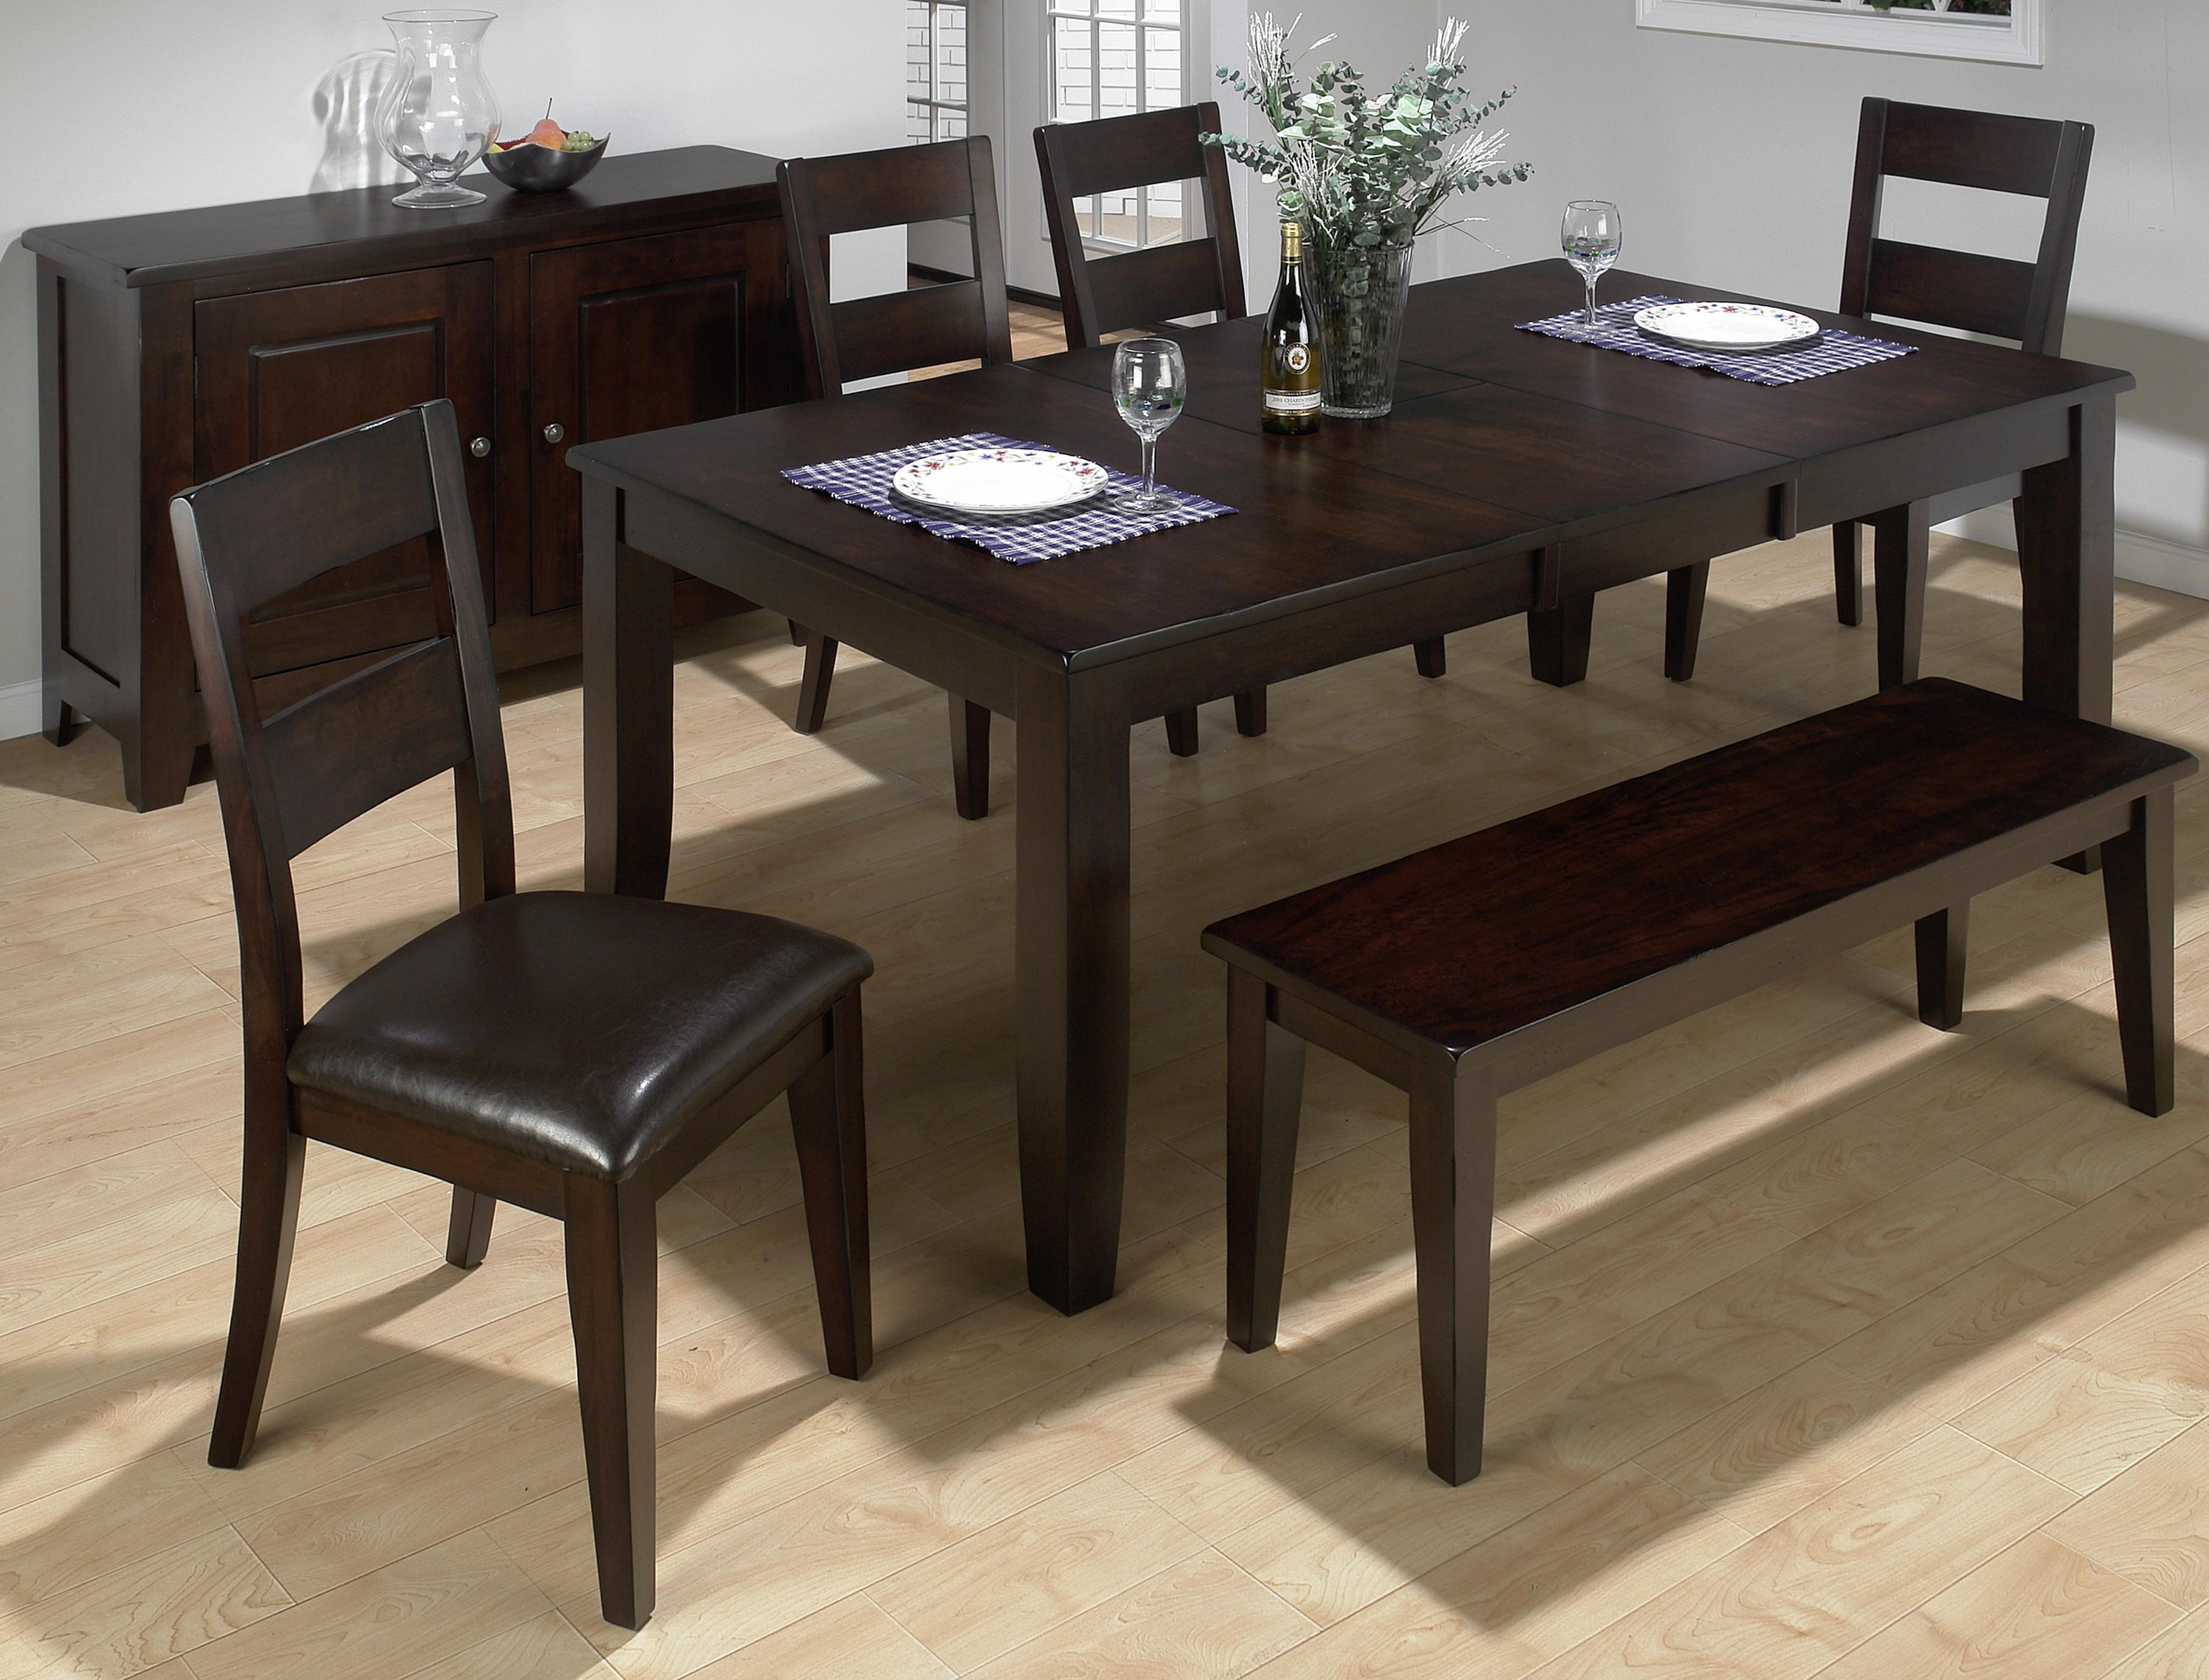 High Quality Conventional Height Butterfly Leaf Dining Table With Hand Hewn Corners,  Burnished Edges And Rugged Scale